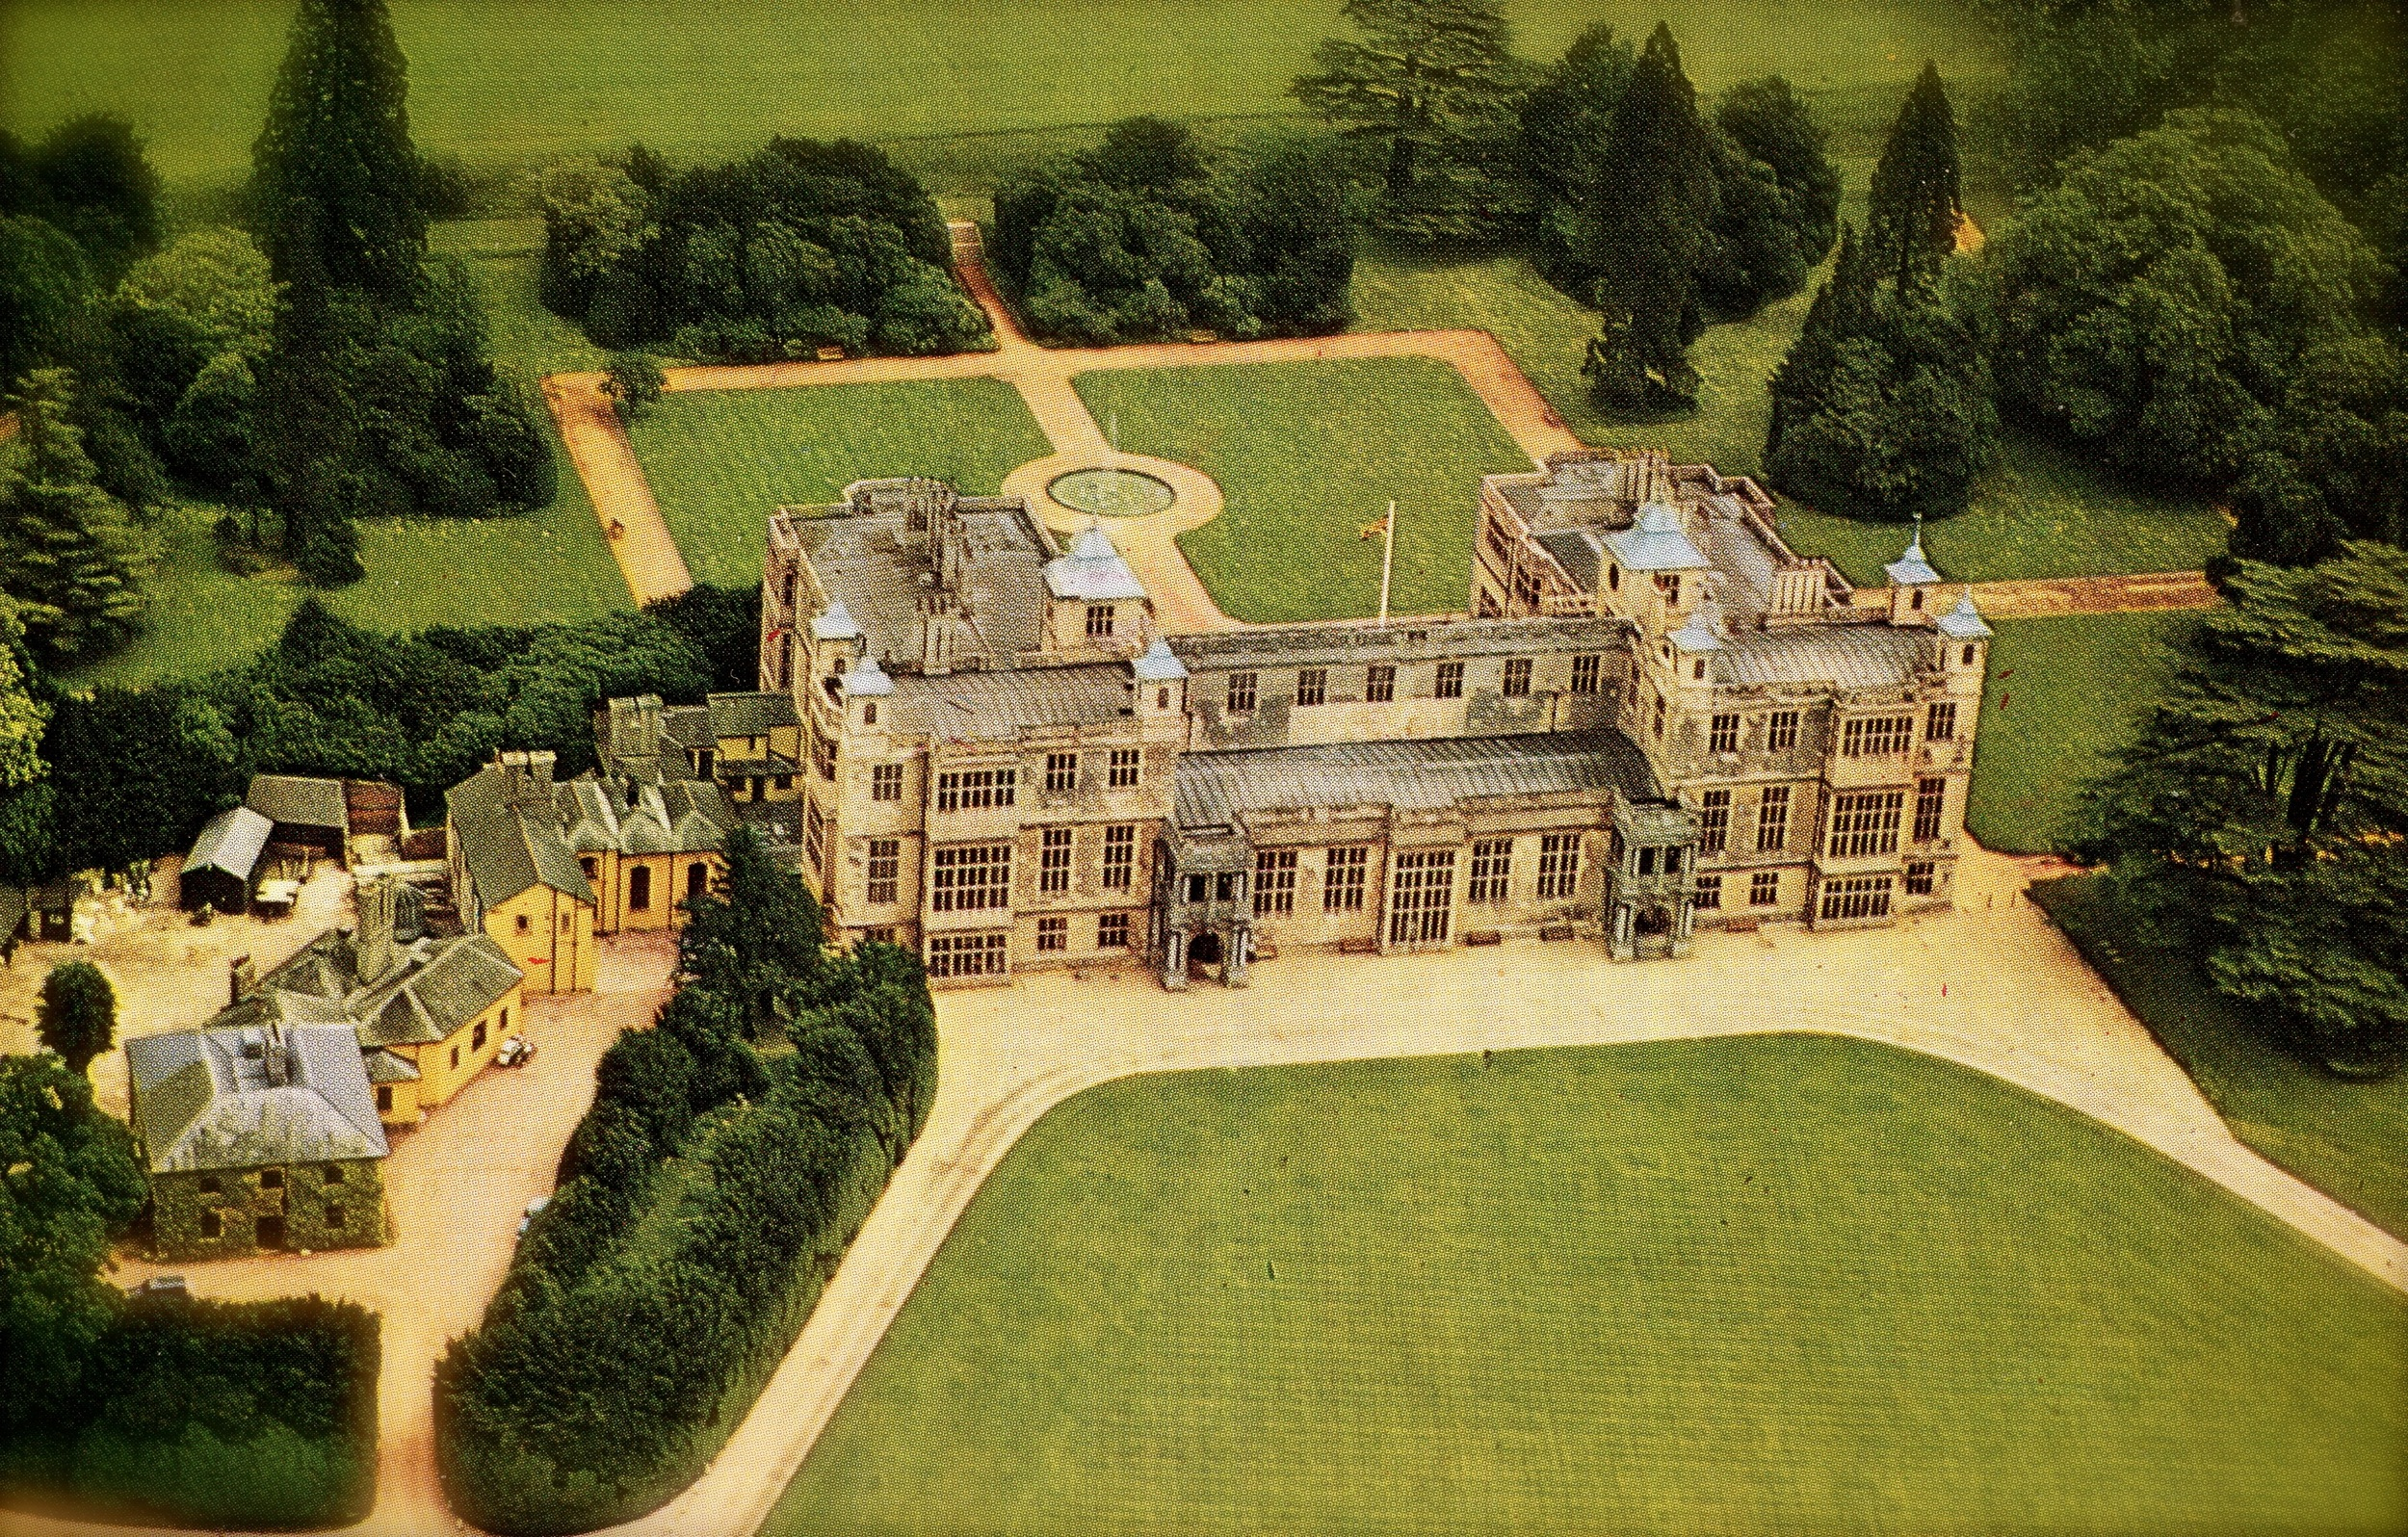 Audley End House, England